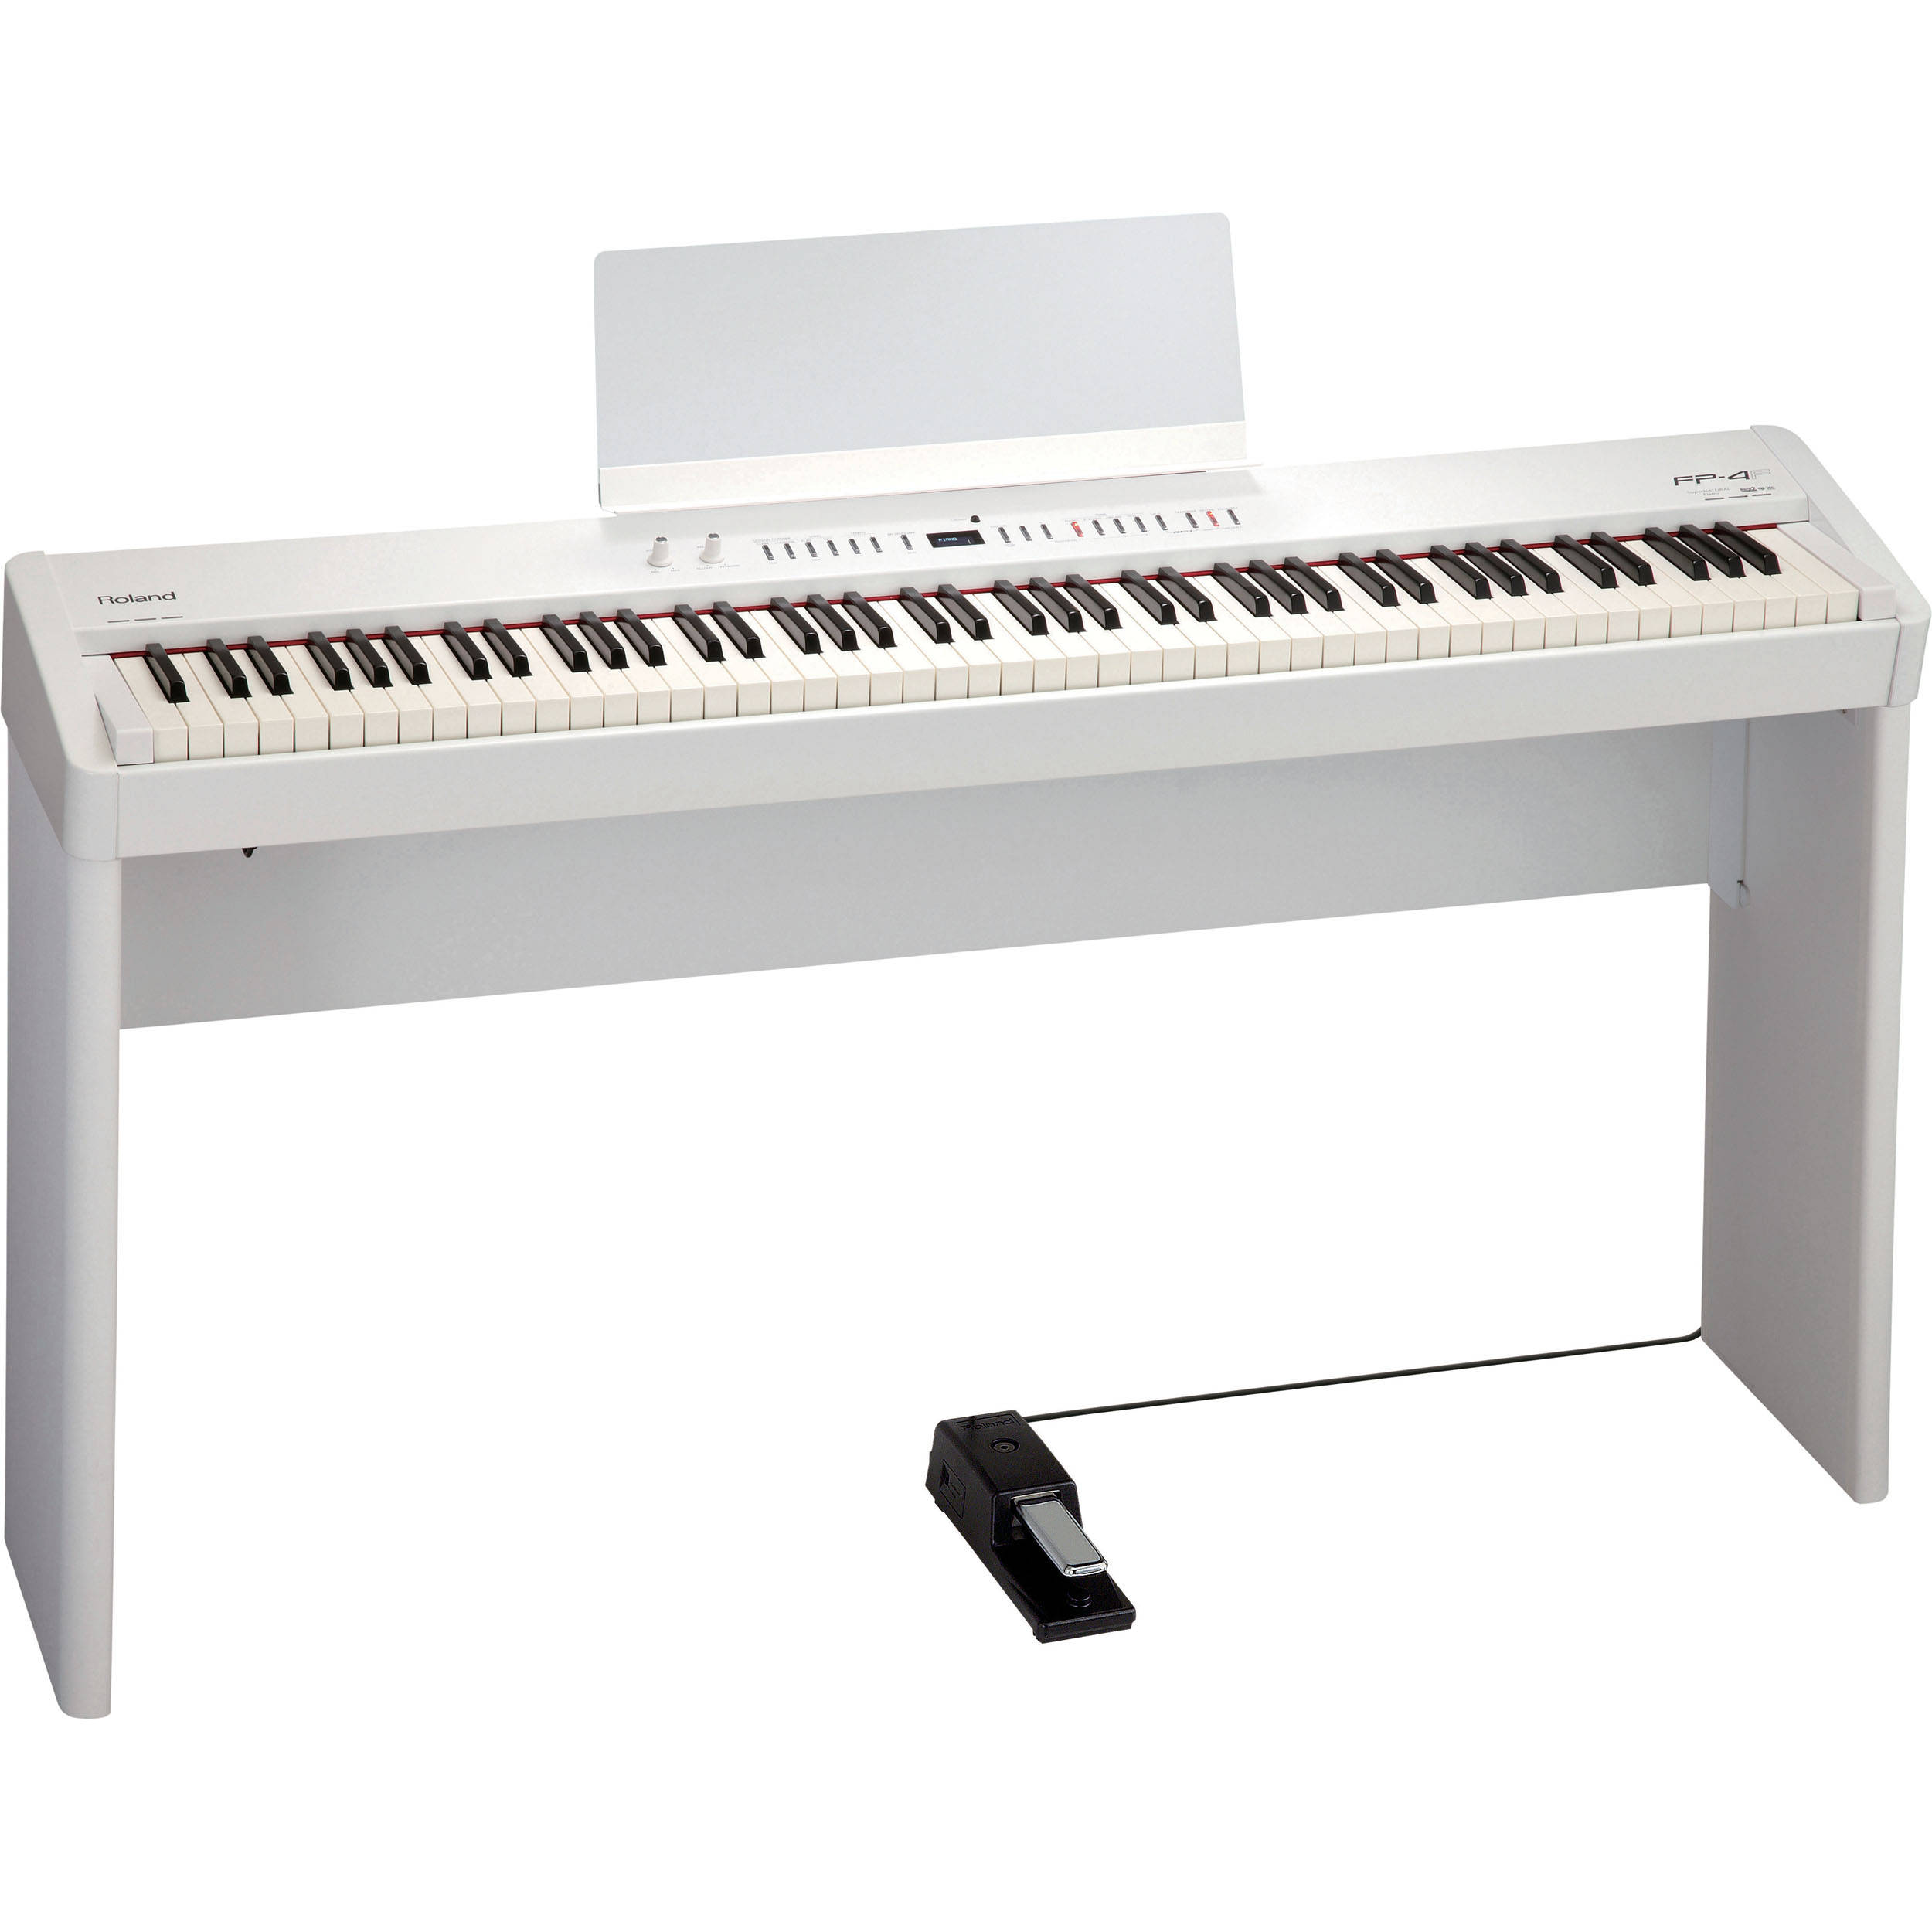 roland fp 4f digital piano white fp 4f whc b h photo video. Black Bedroom Furniture Sets. Home Design Ideas